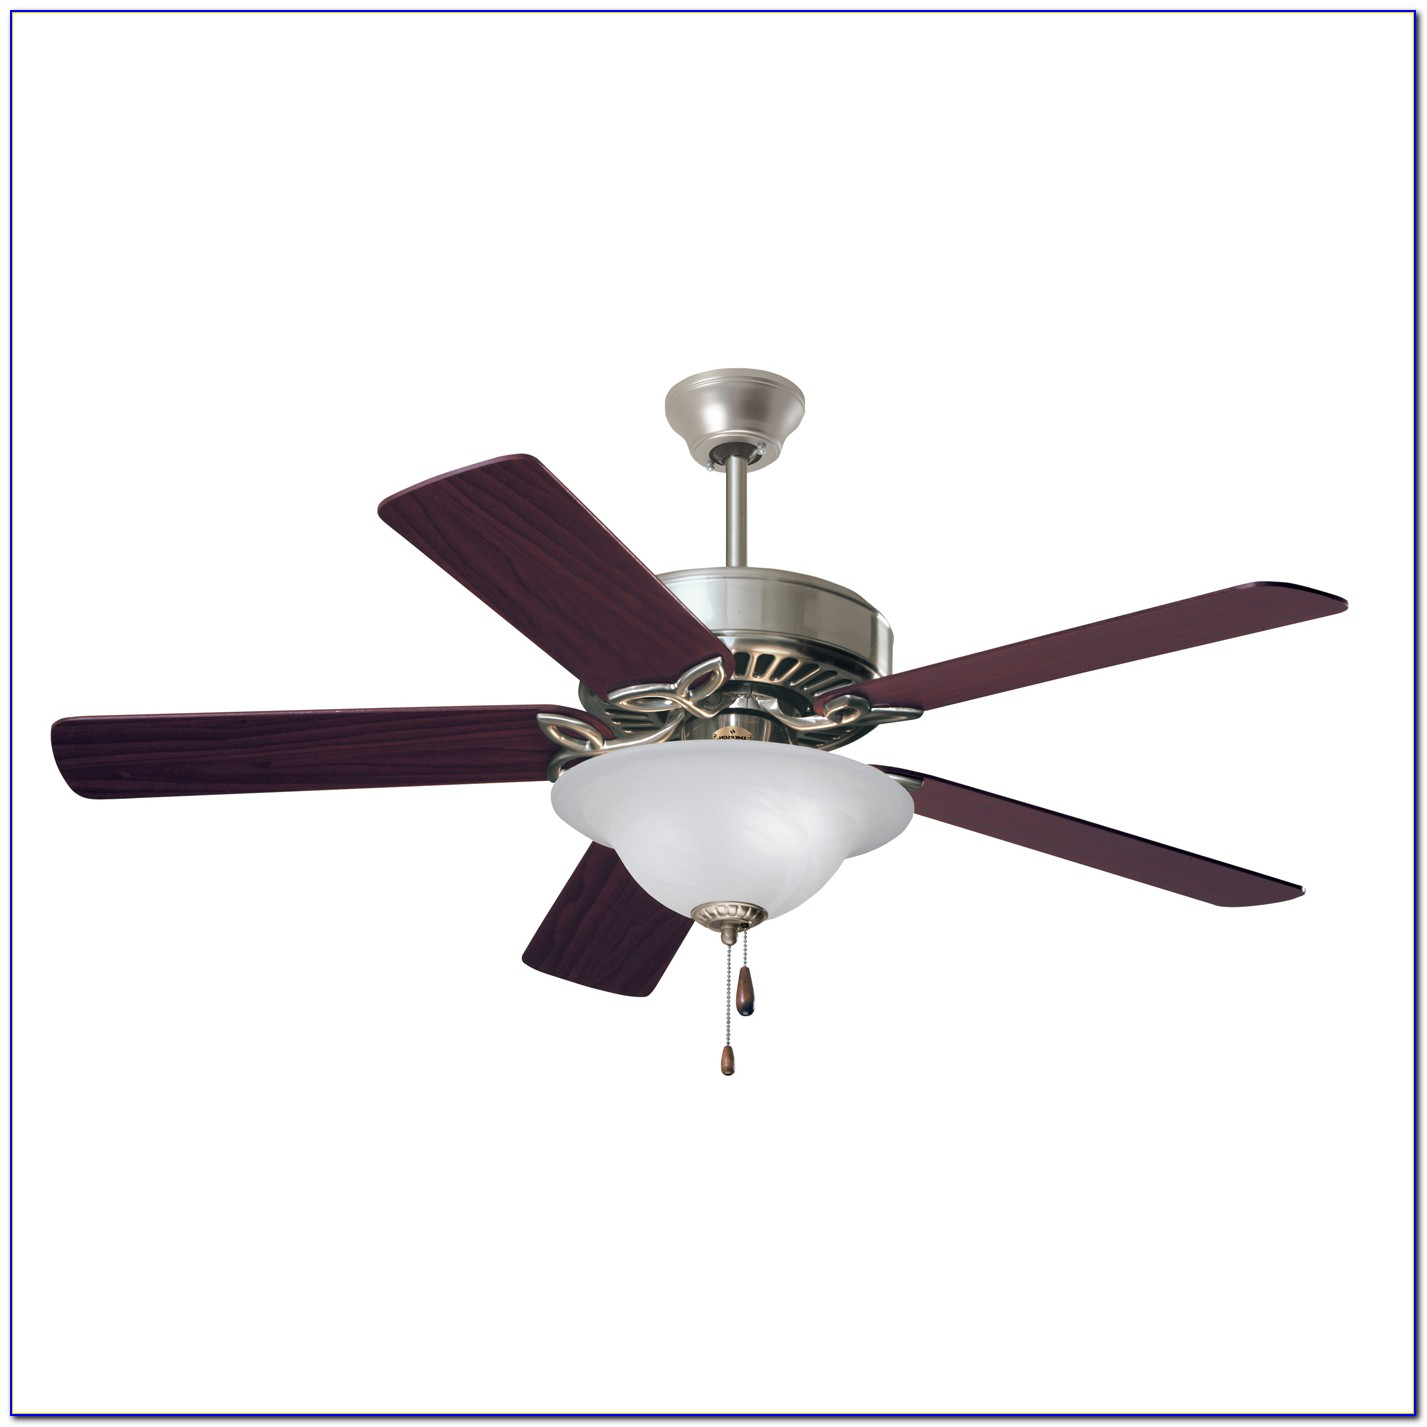 Emerson Ceiling Fan Light Fixture